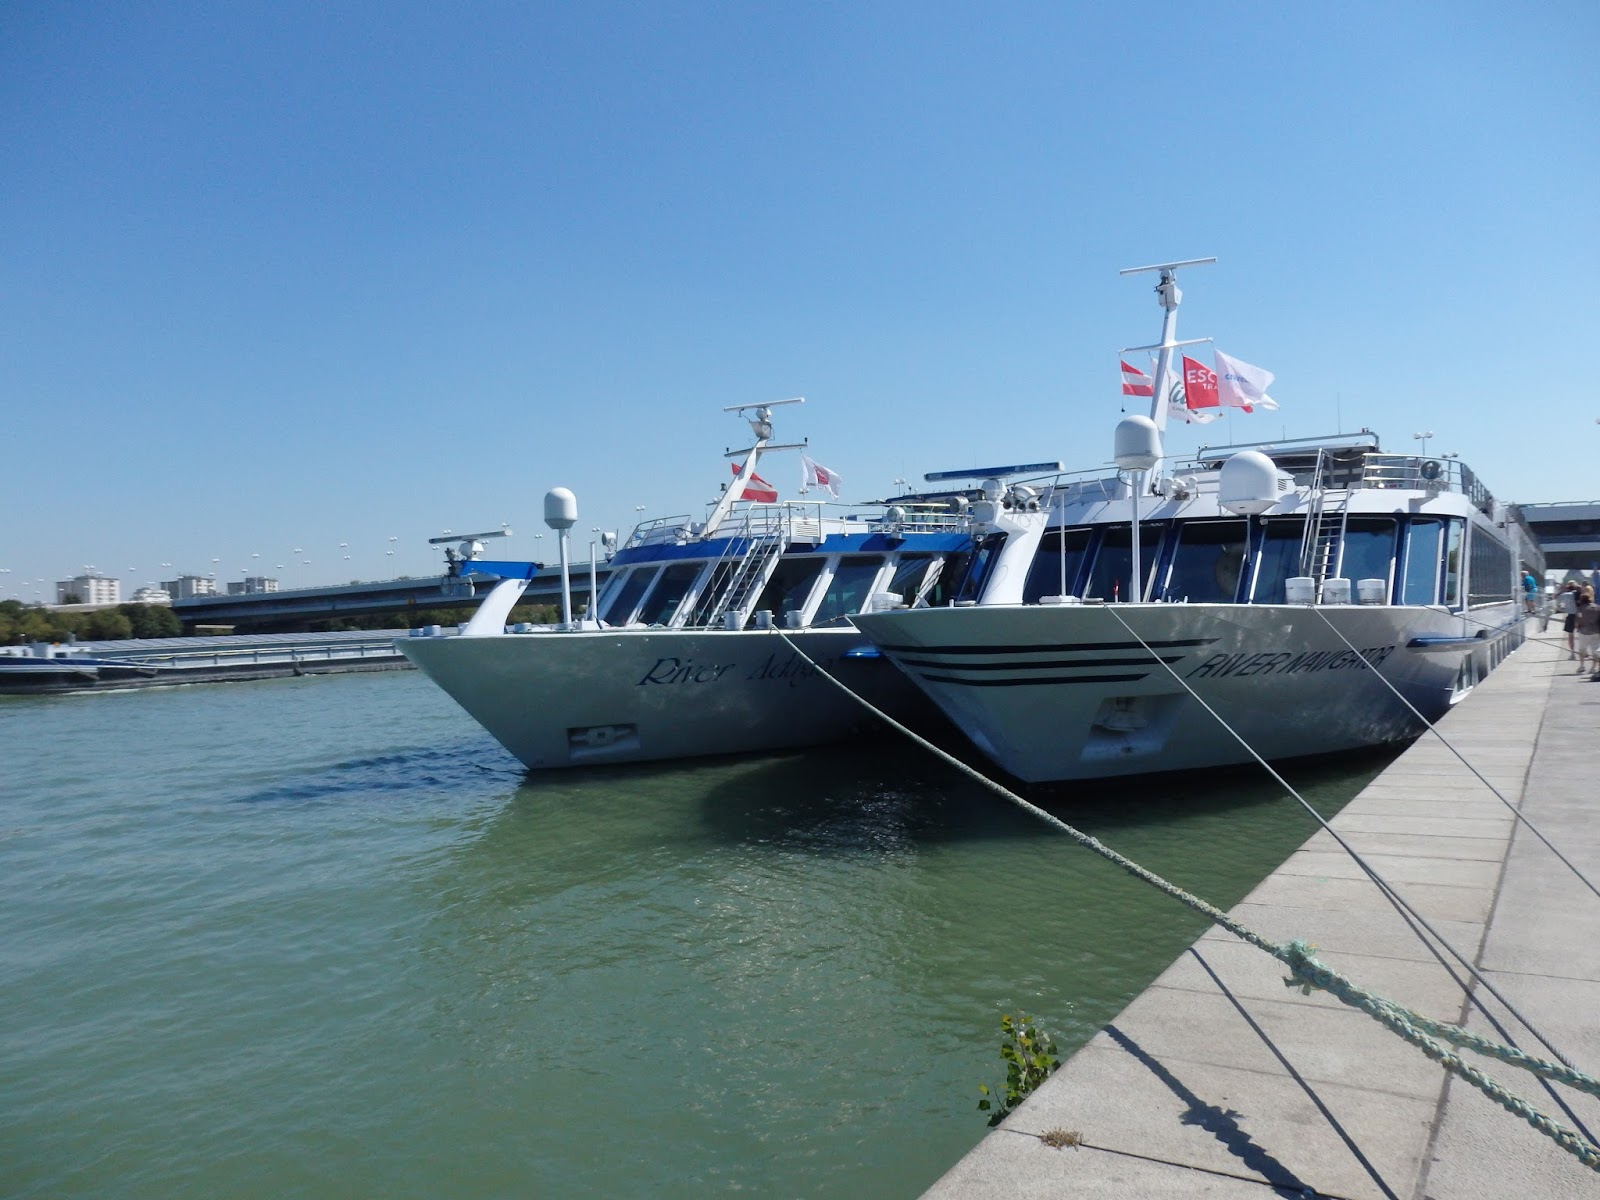 On The Road European River Cruise The MS River Adagio - 10 best european river cruises 2